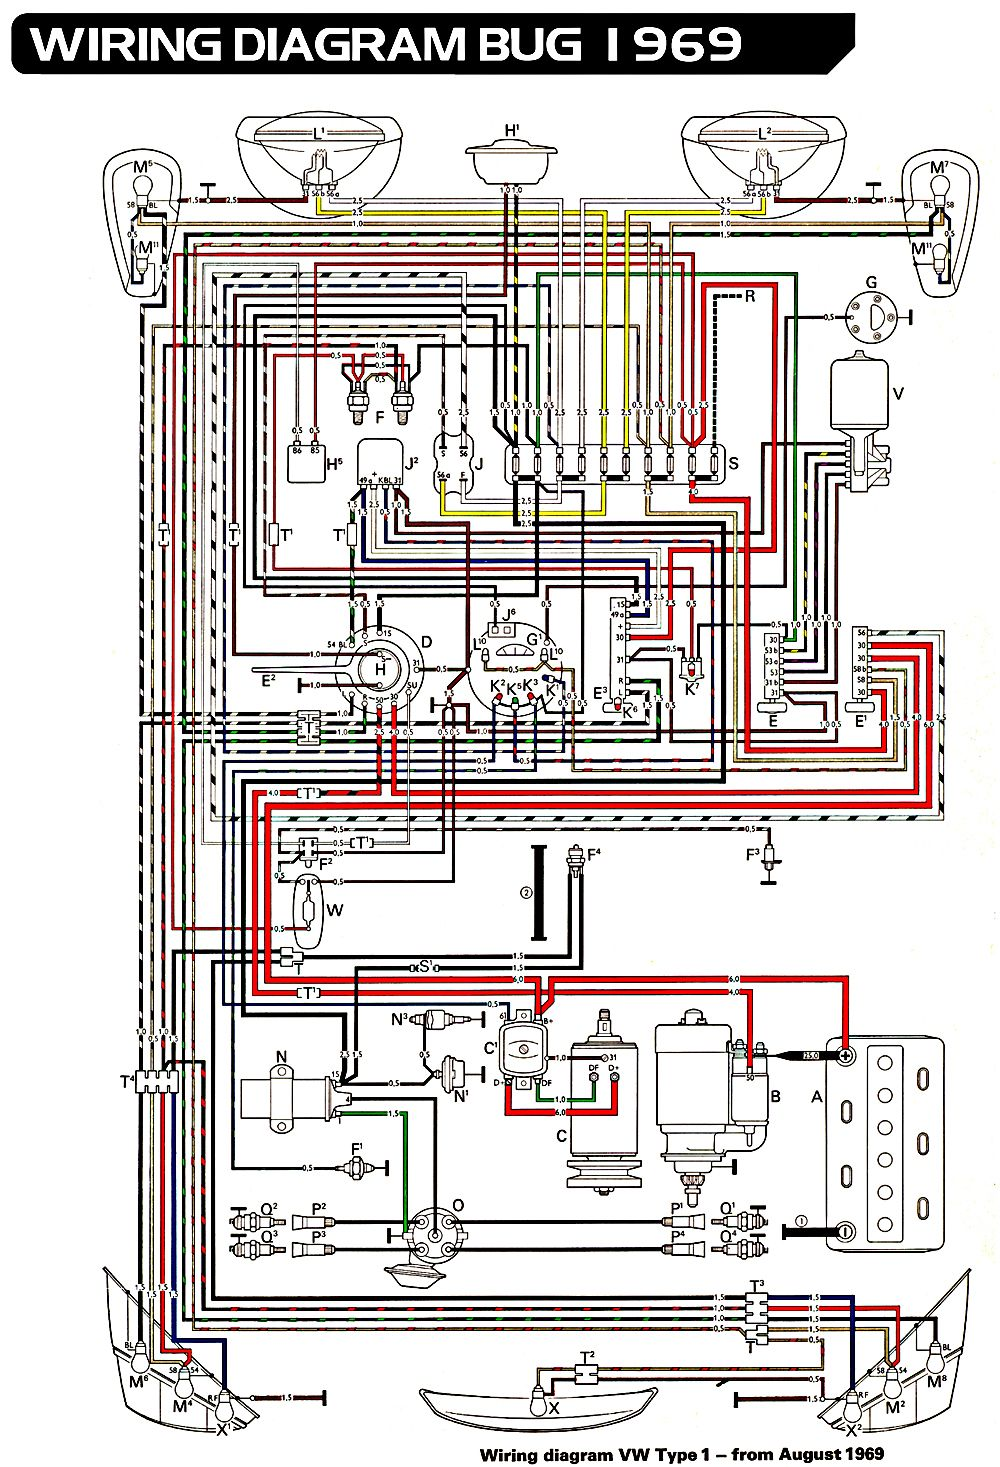 69 Vw Bug Wiring Harness Diagrams Schematics At 1967 Beetle Diagram  Escarabajos Vw, Vw Vocho